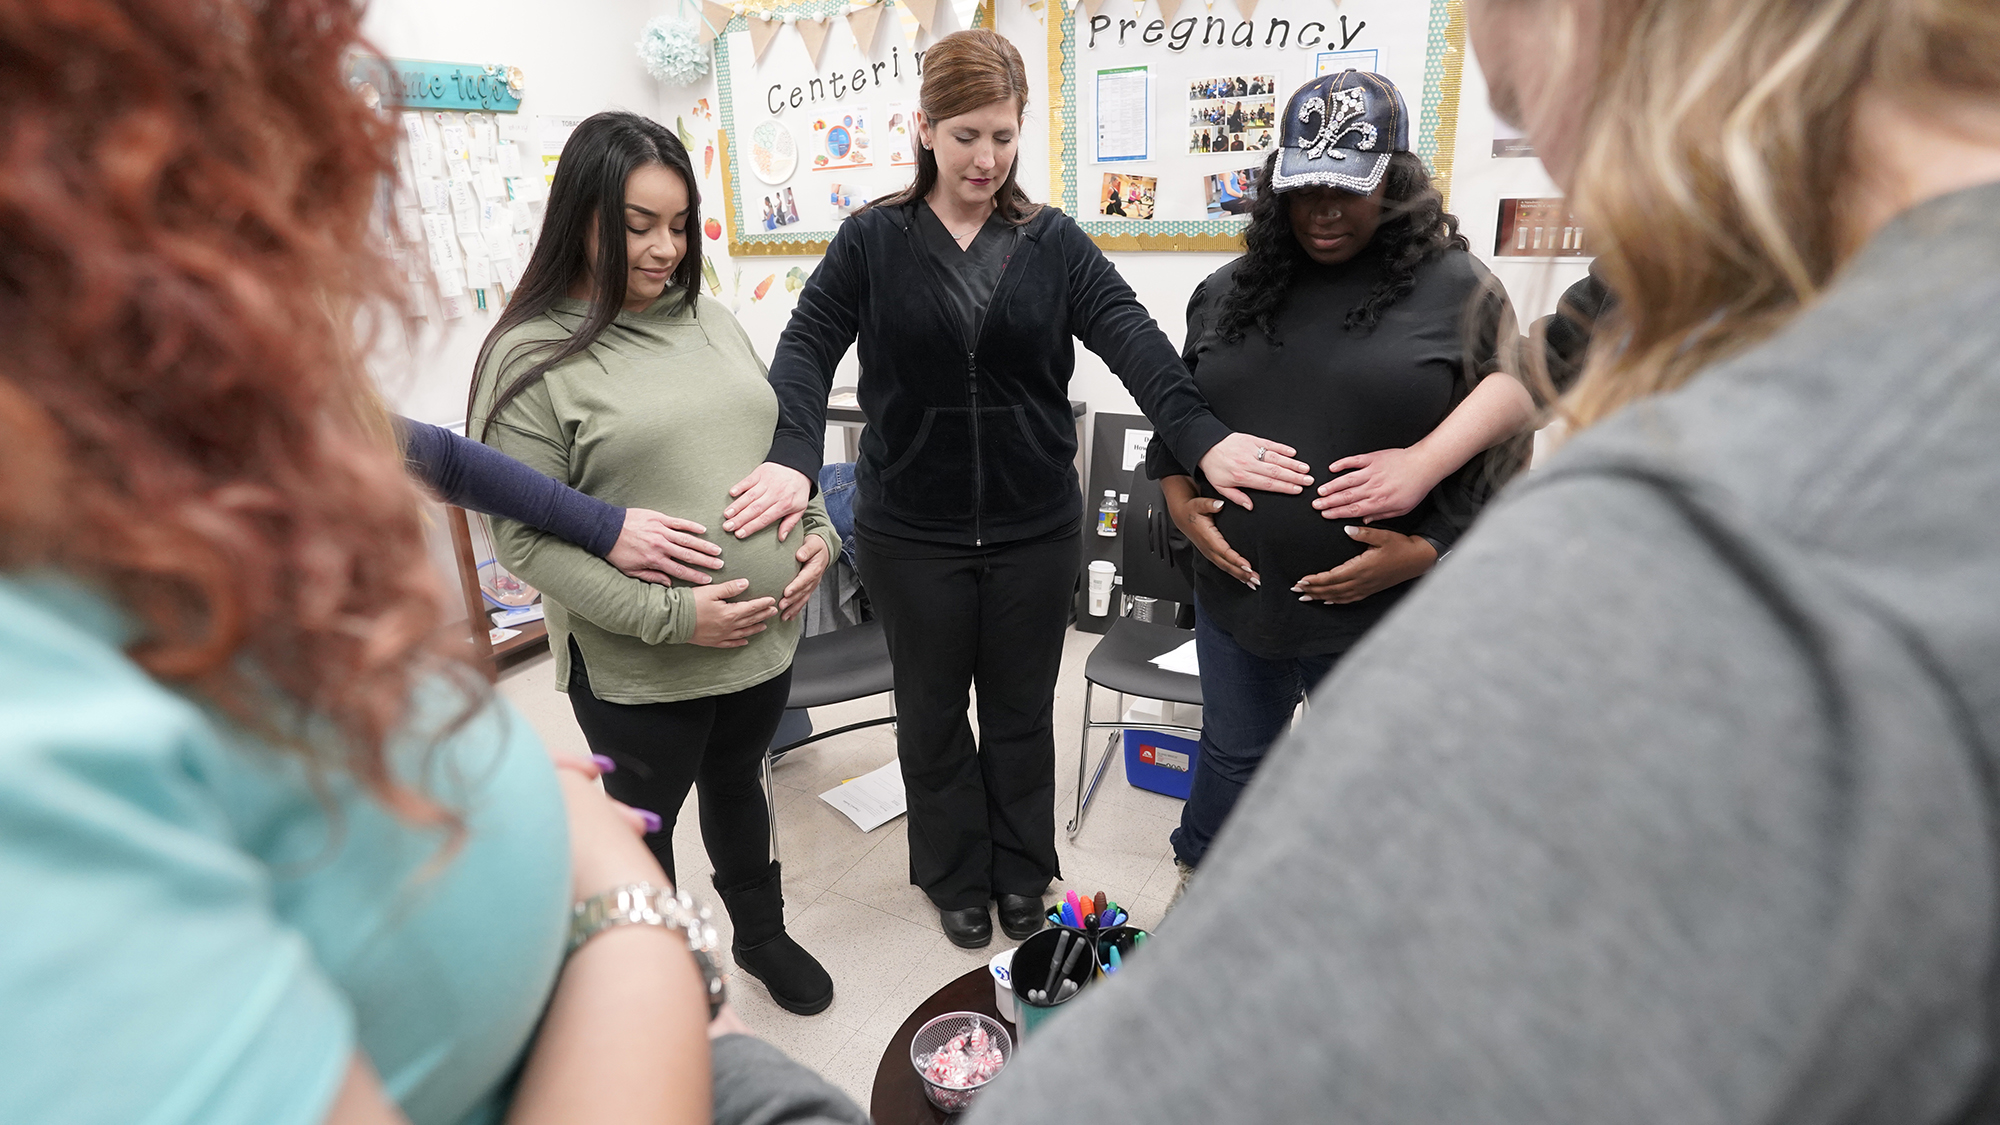 Pregnant women in circle touching bellies